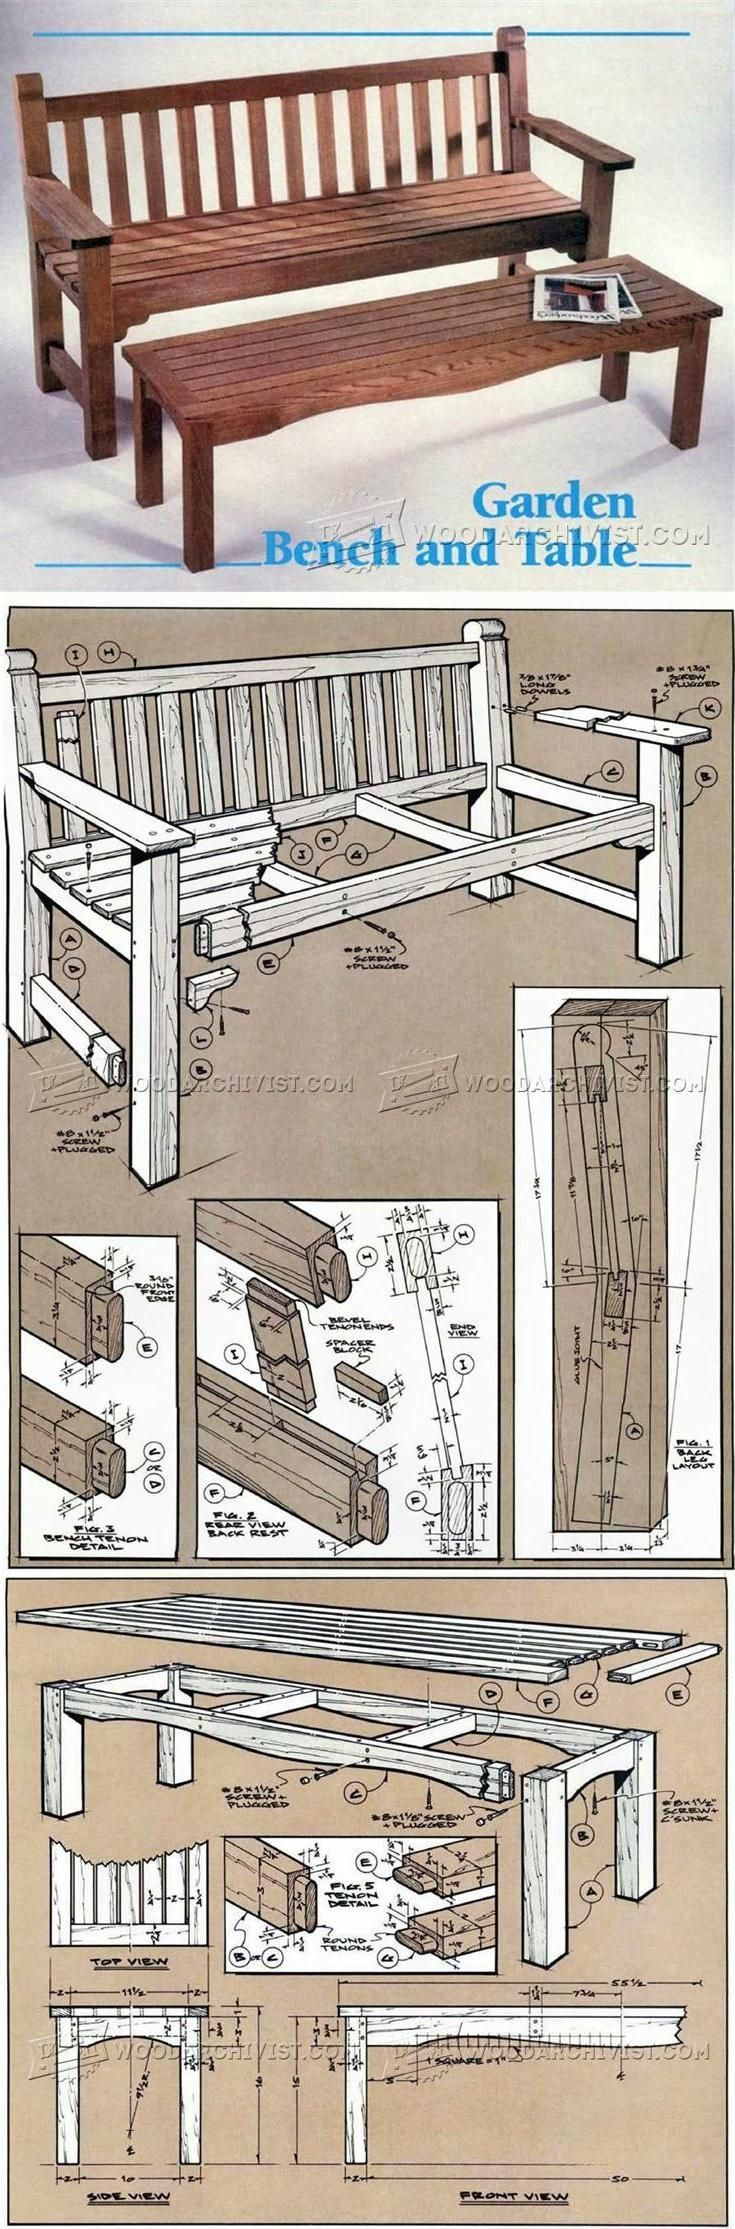 Garden Bench and Table Plans - Outdoor Furniture Plans and Projects   WoodArchivist.com